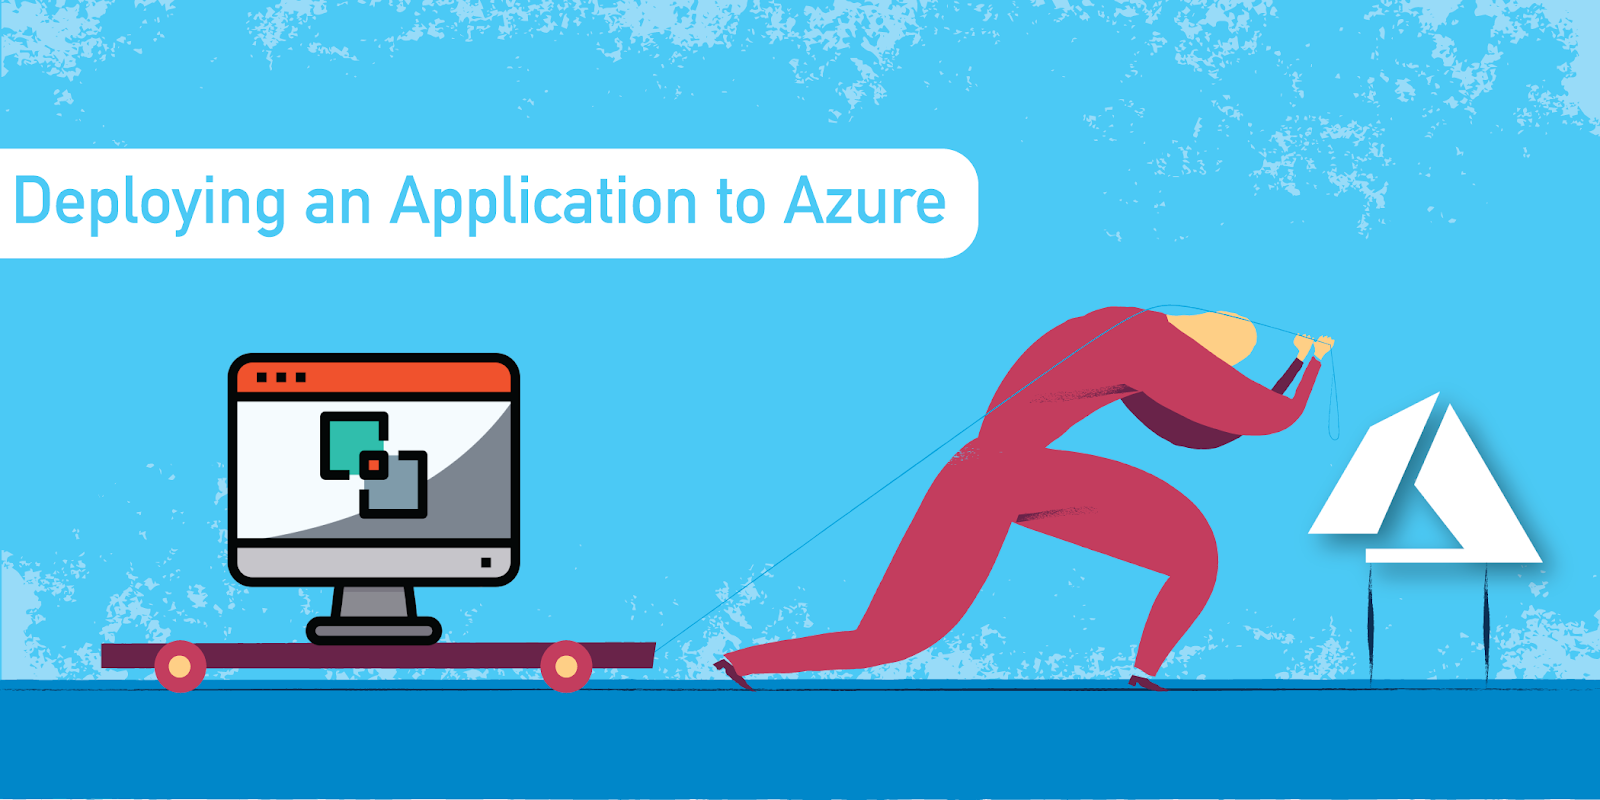 Deployment of an Application to Microsoft Azure